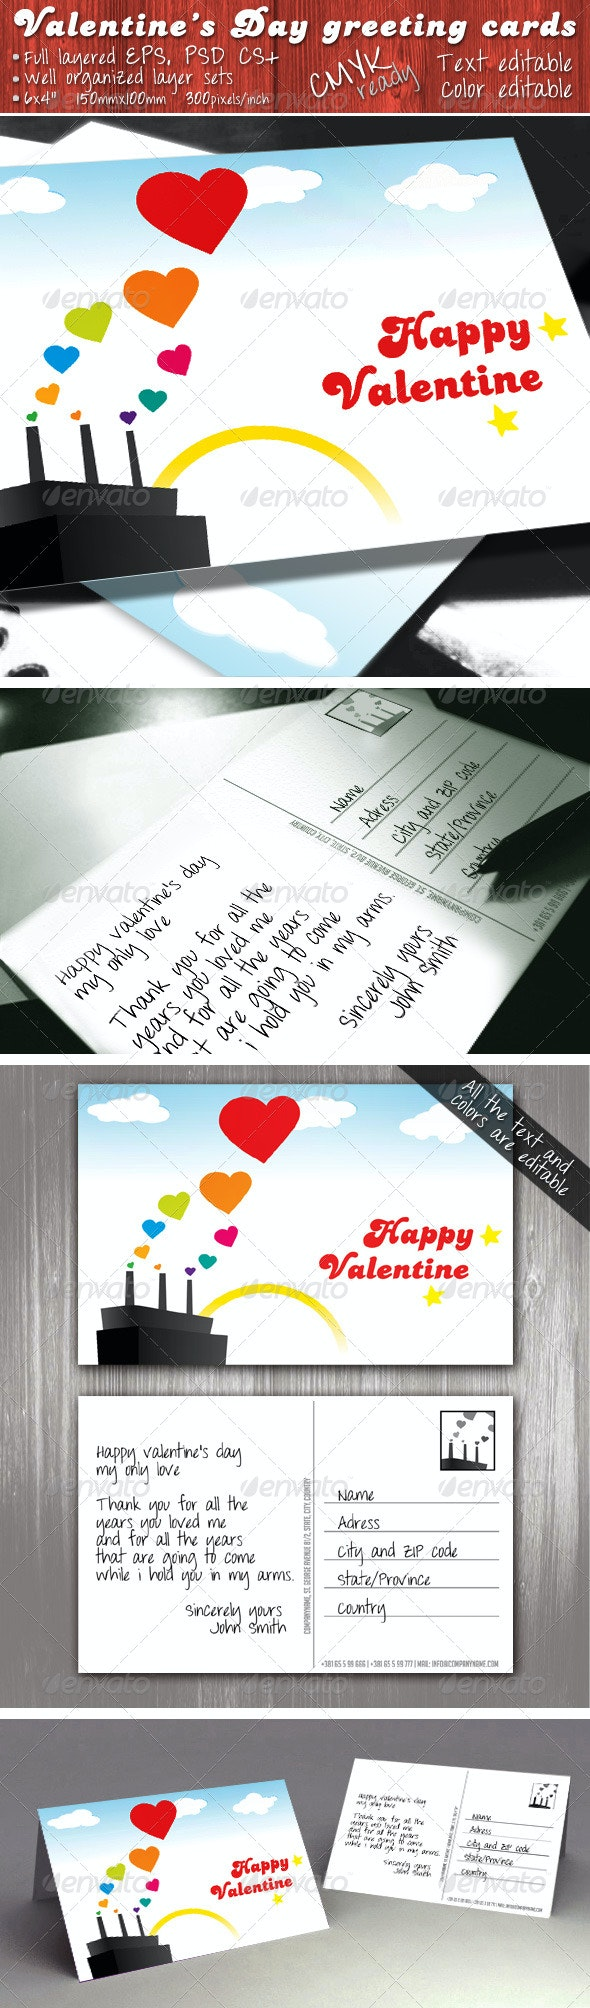 Valentine's Day Greeting Card - Heart Factory - Holiday Greeting Cards